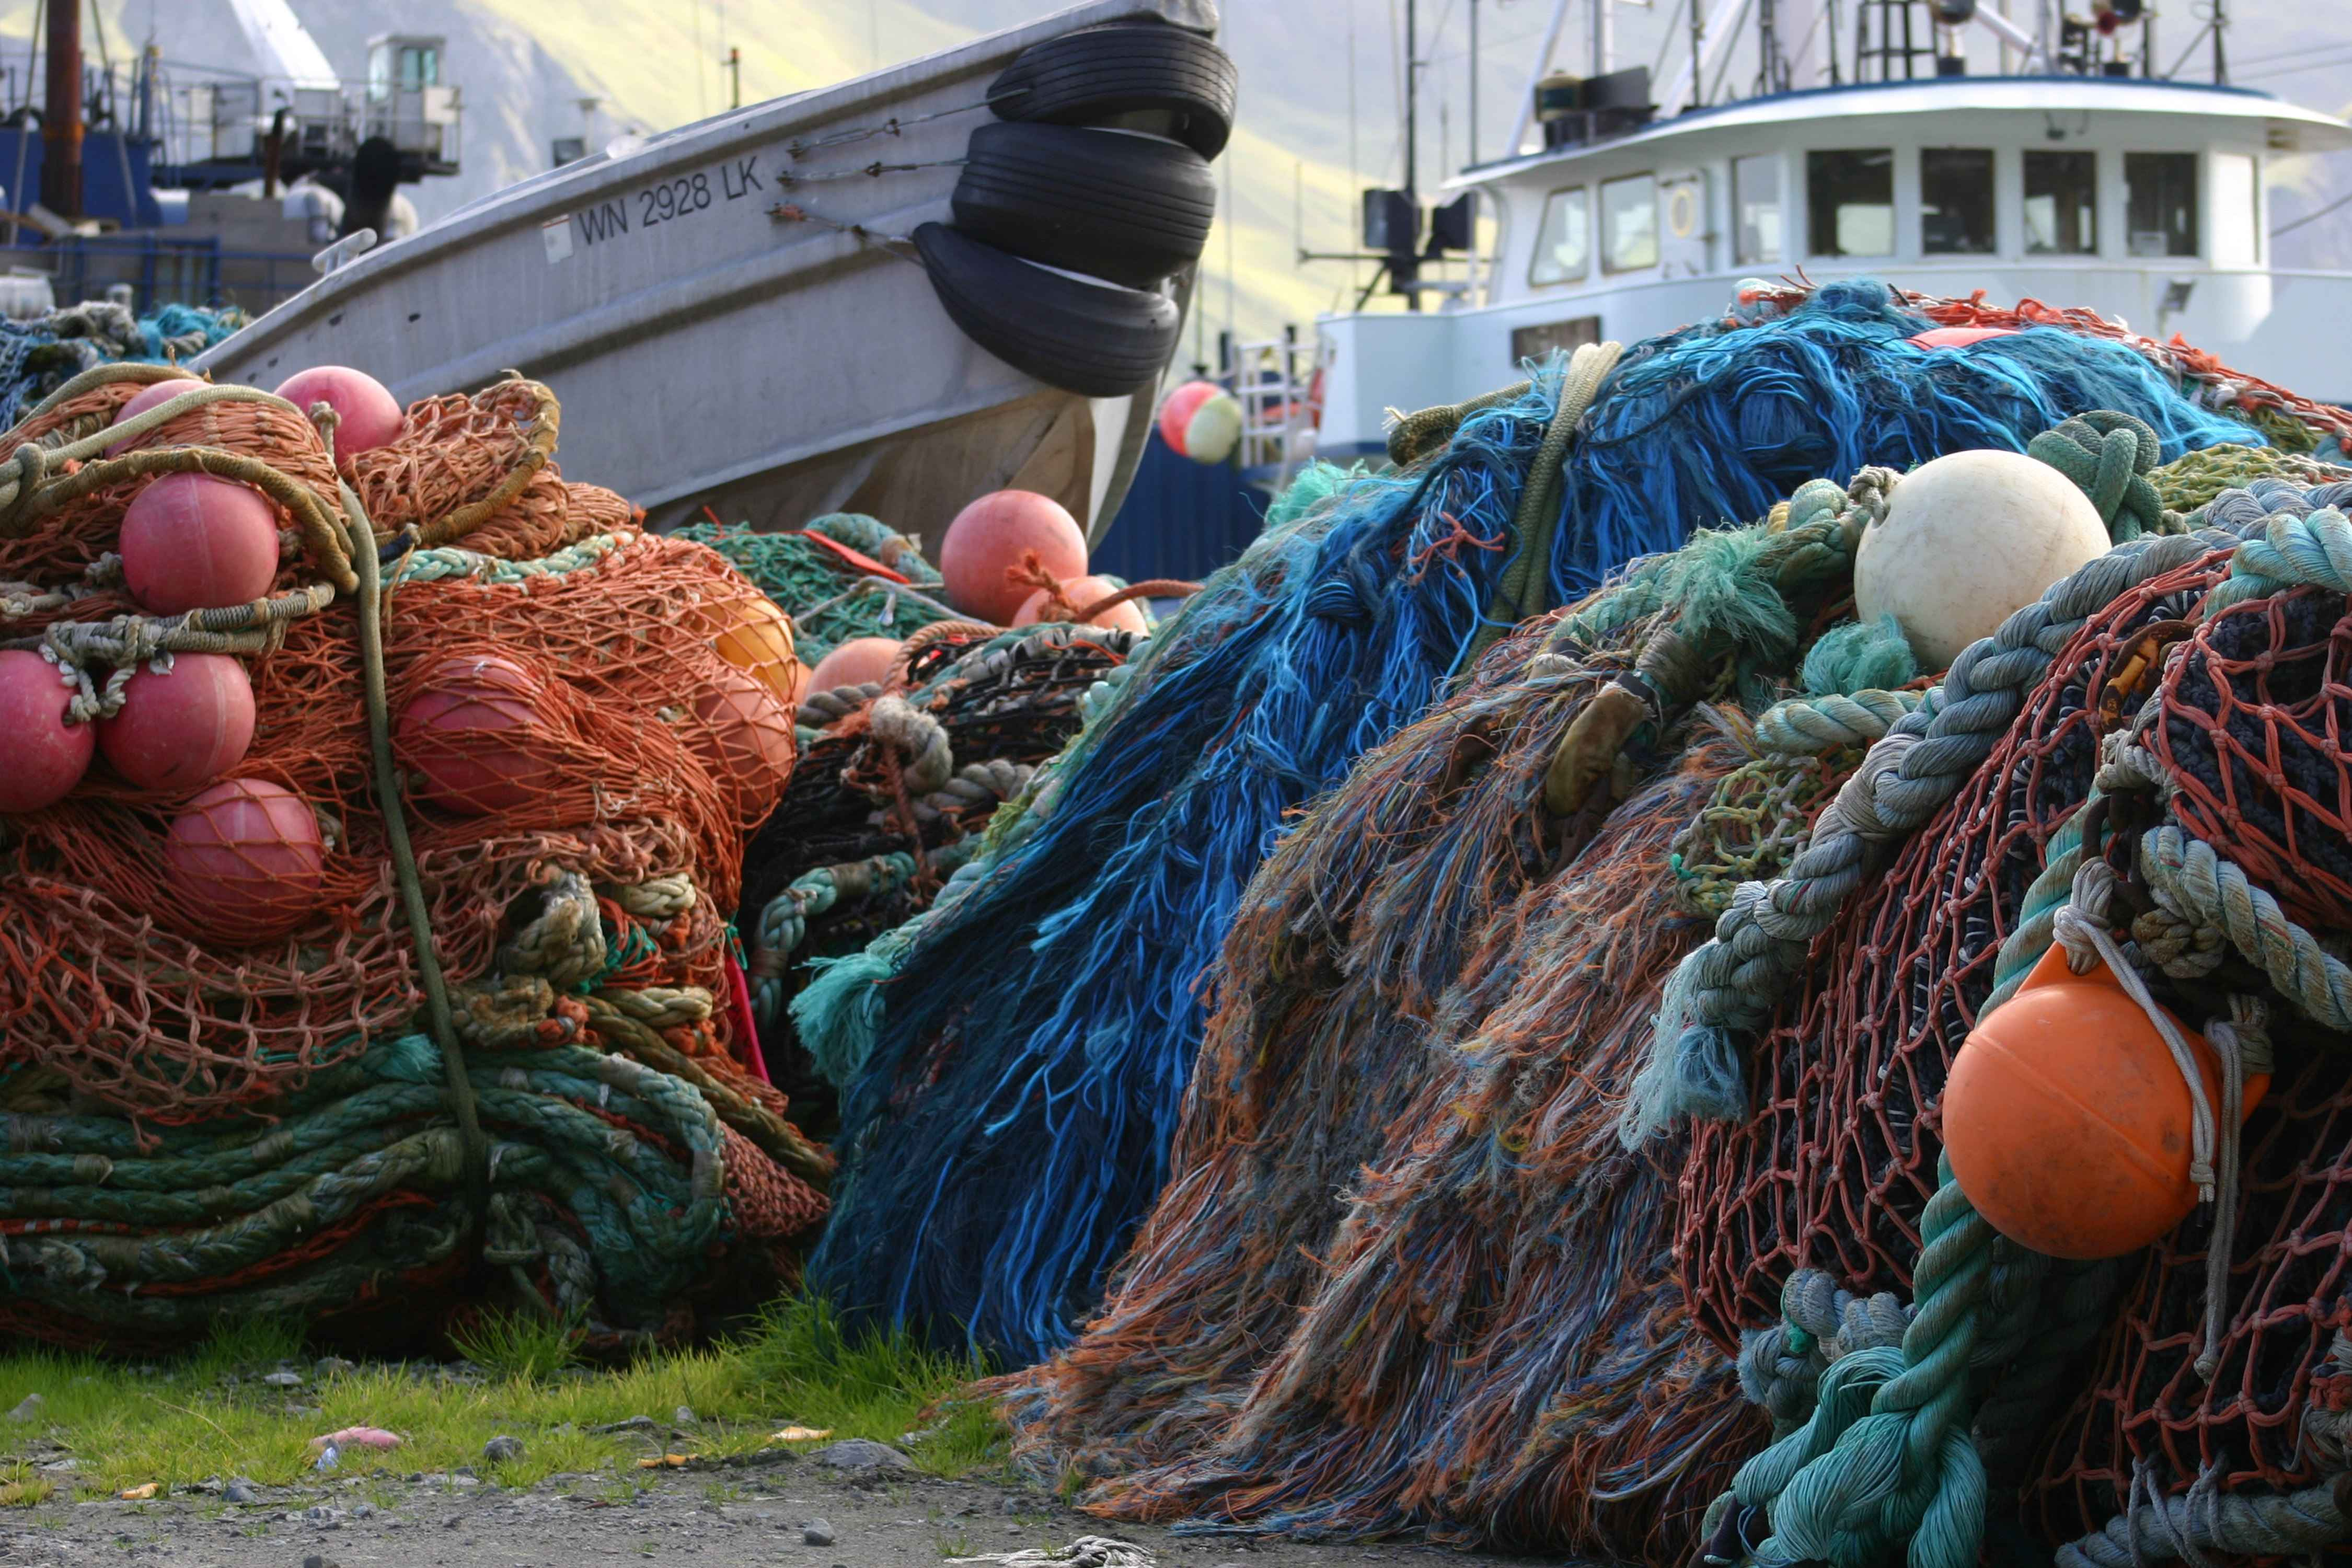 by Stanley Carla US Fish and WIldlife Service Fish net pile in harbor with ships